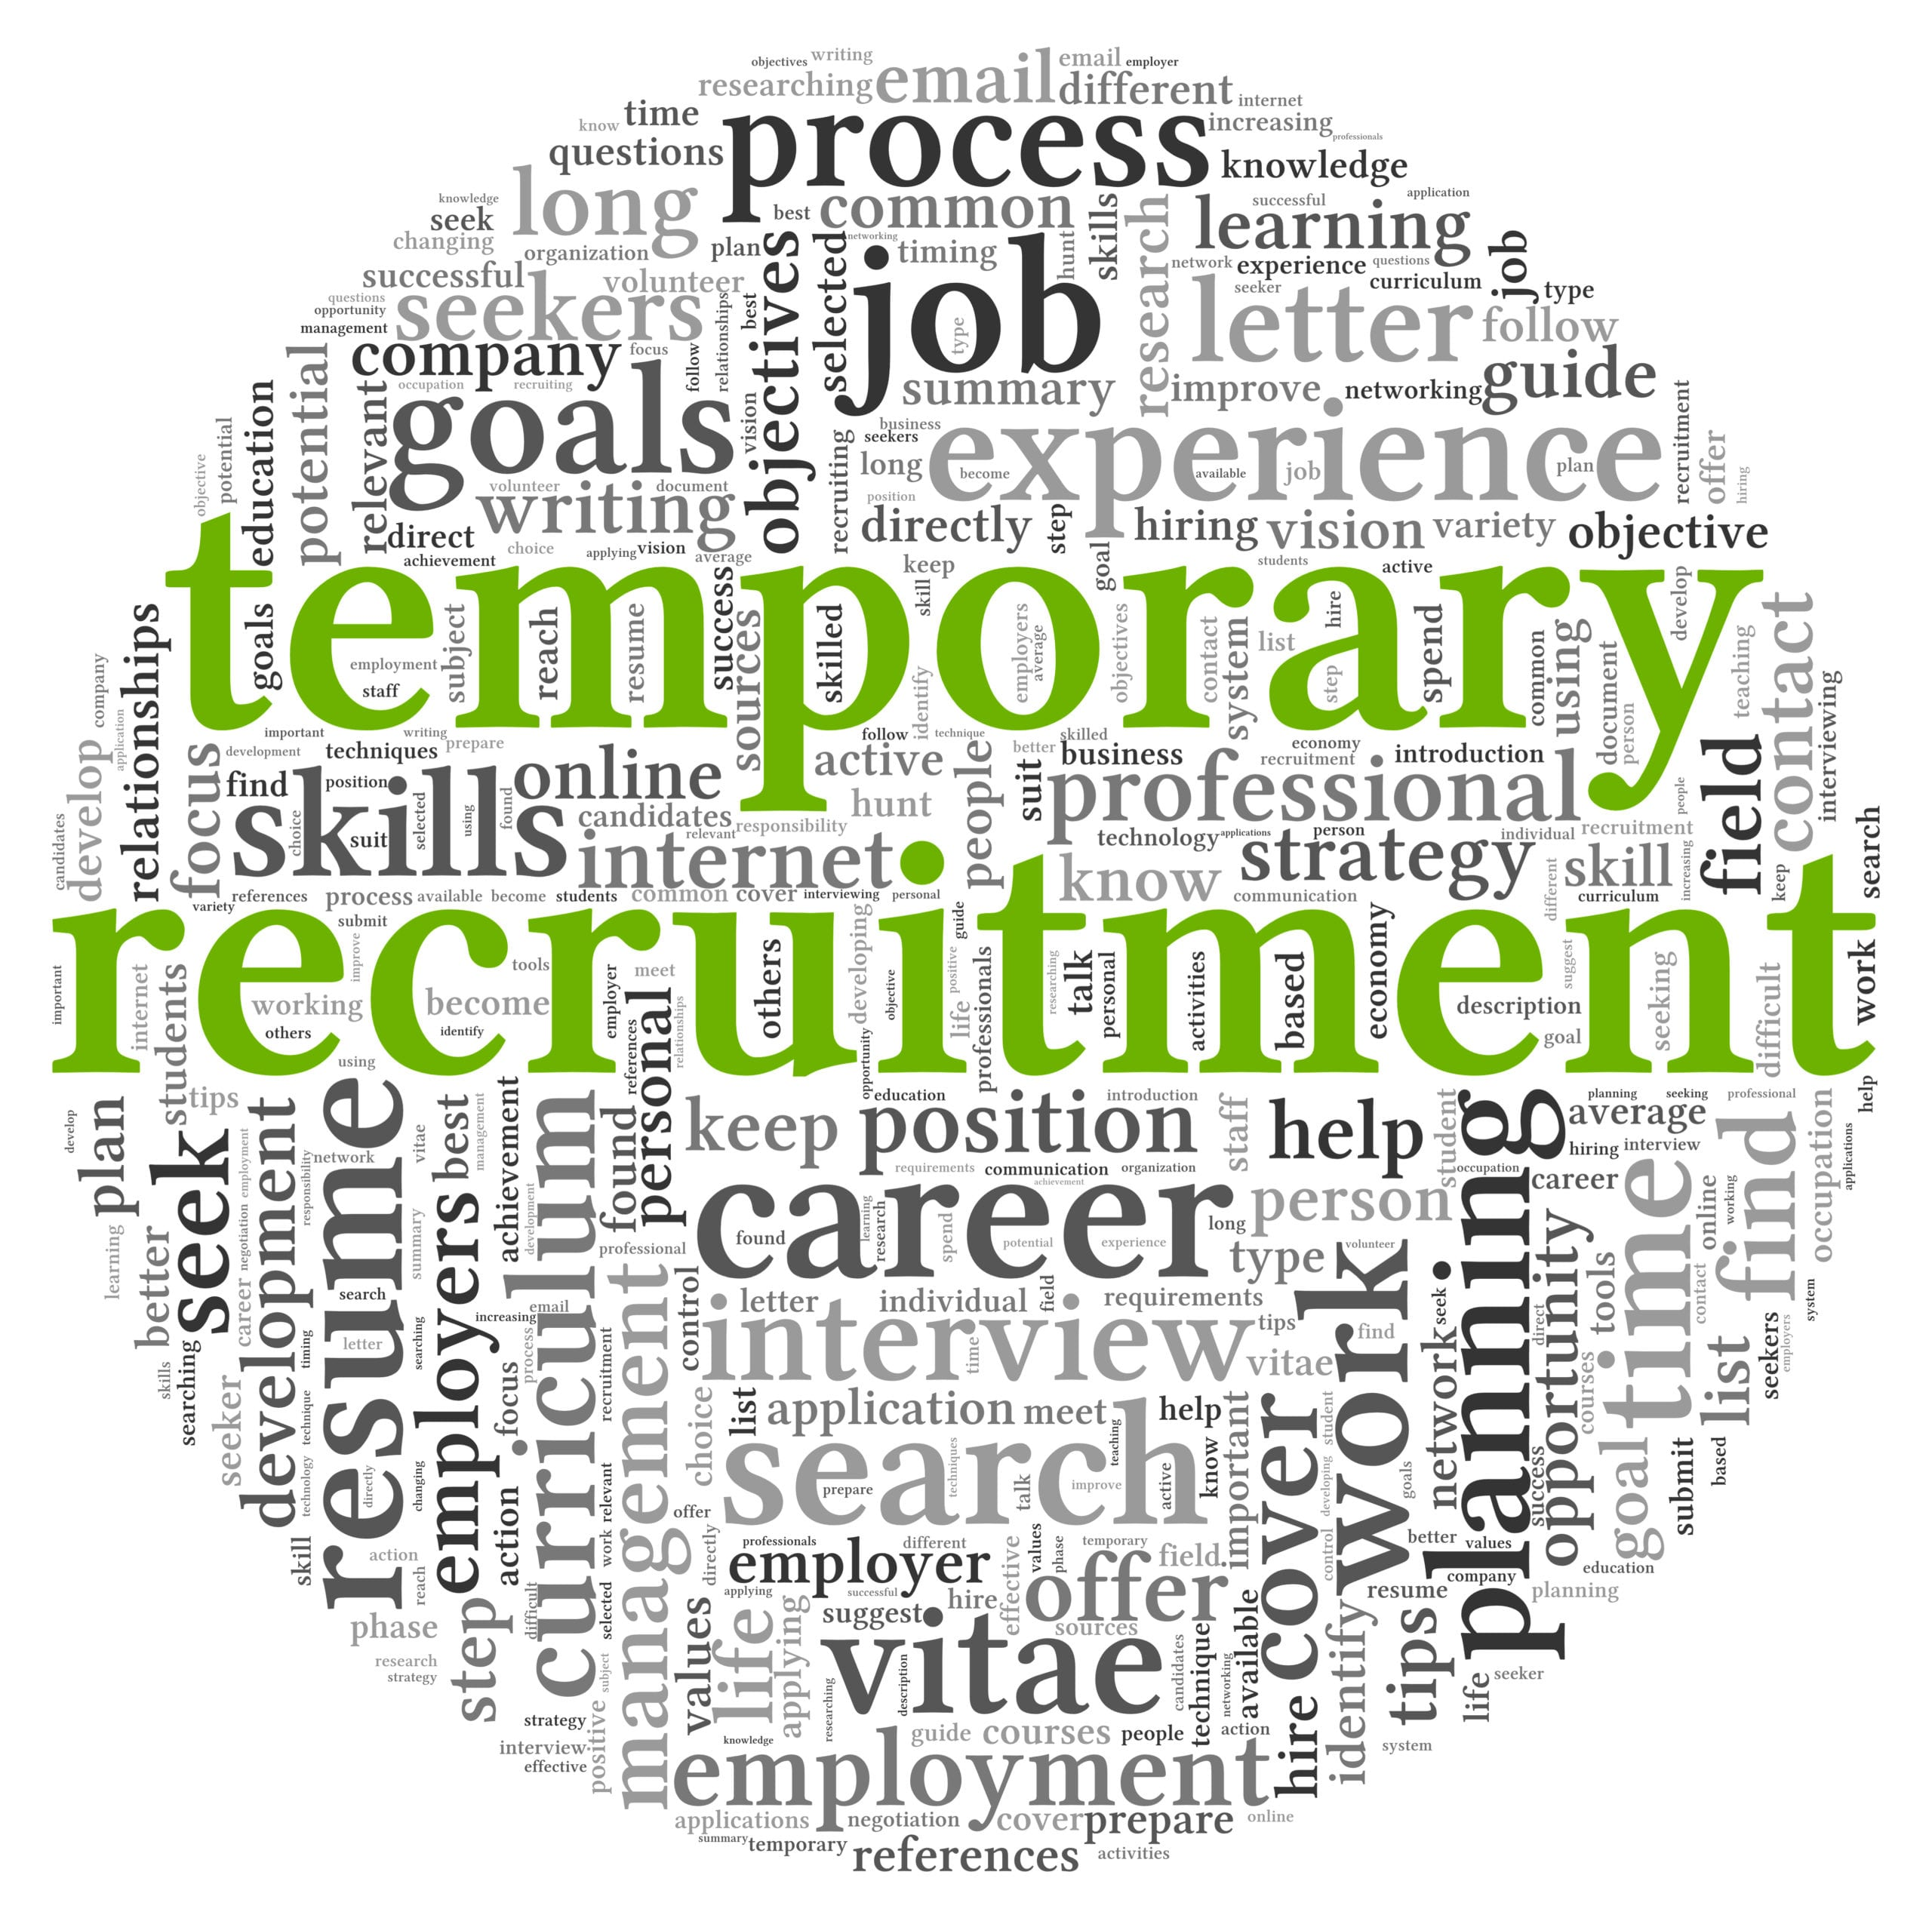 Recruitment market update and the benefits of using temp staff